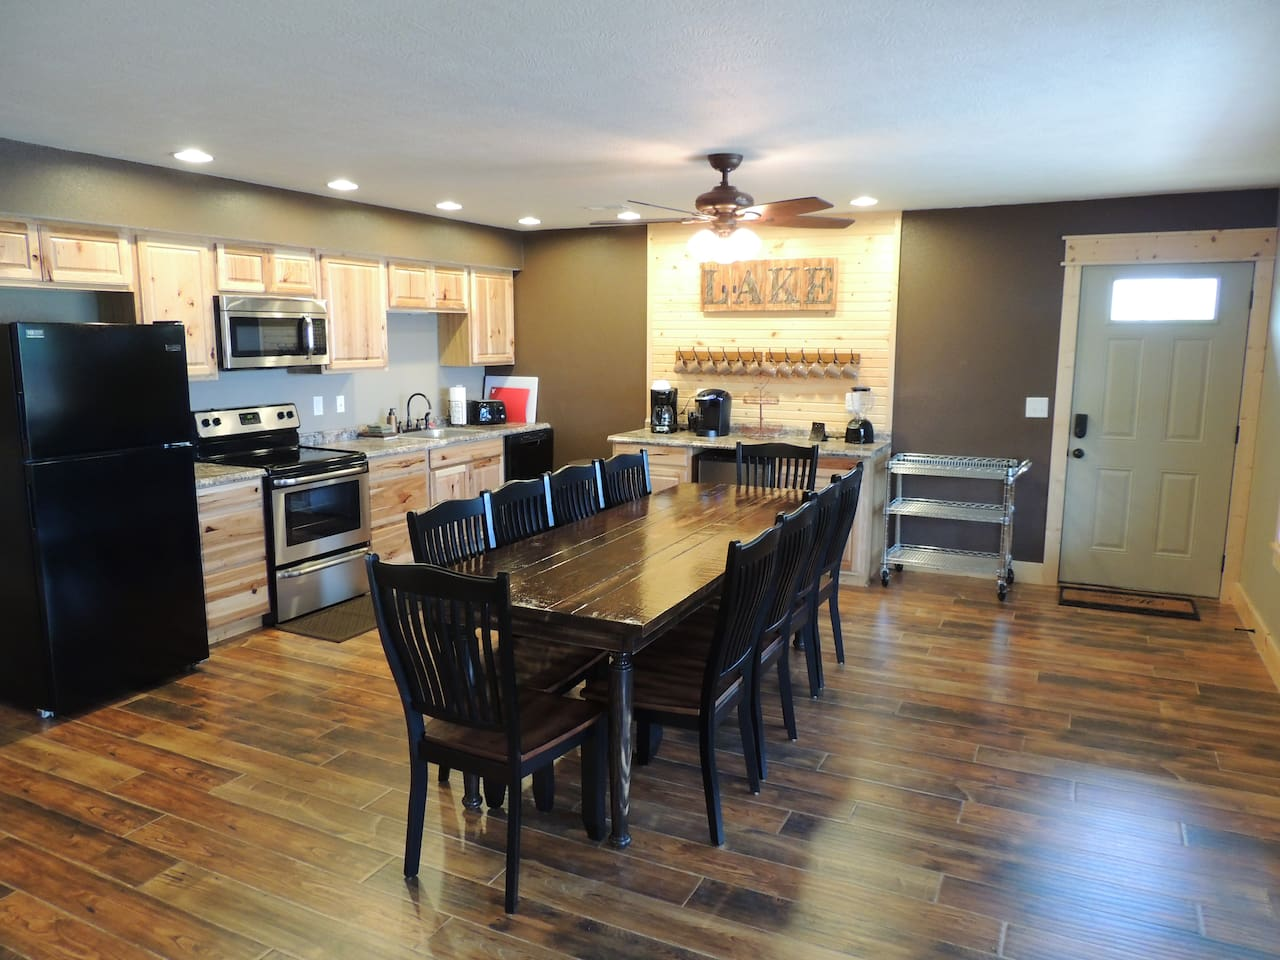 Spacious open kitchen and living room (2 of these)